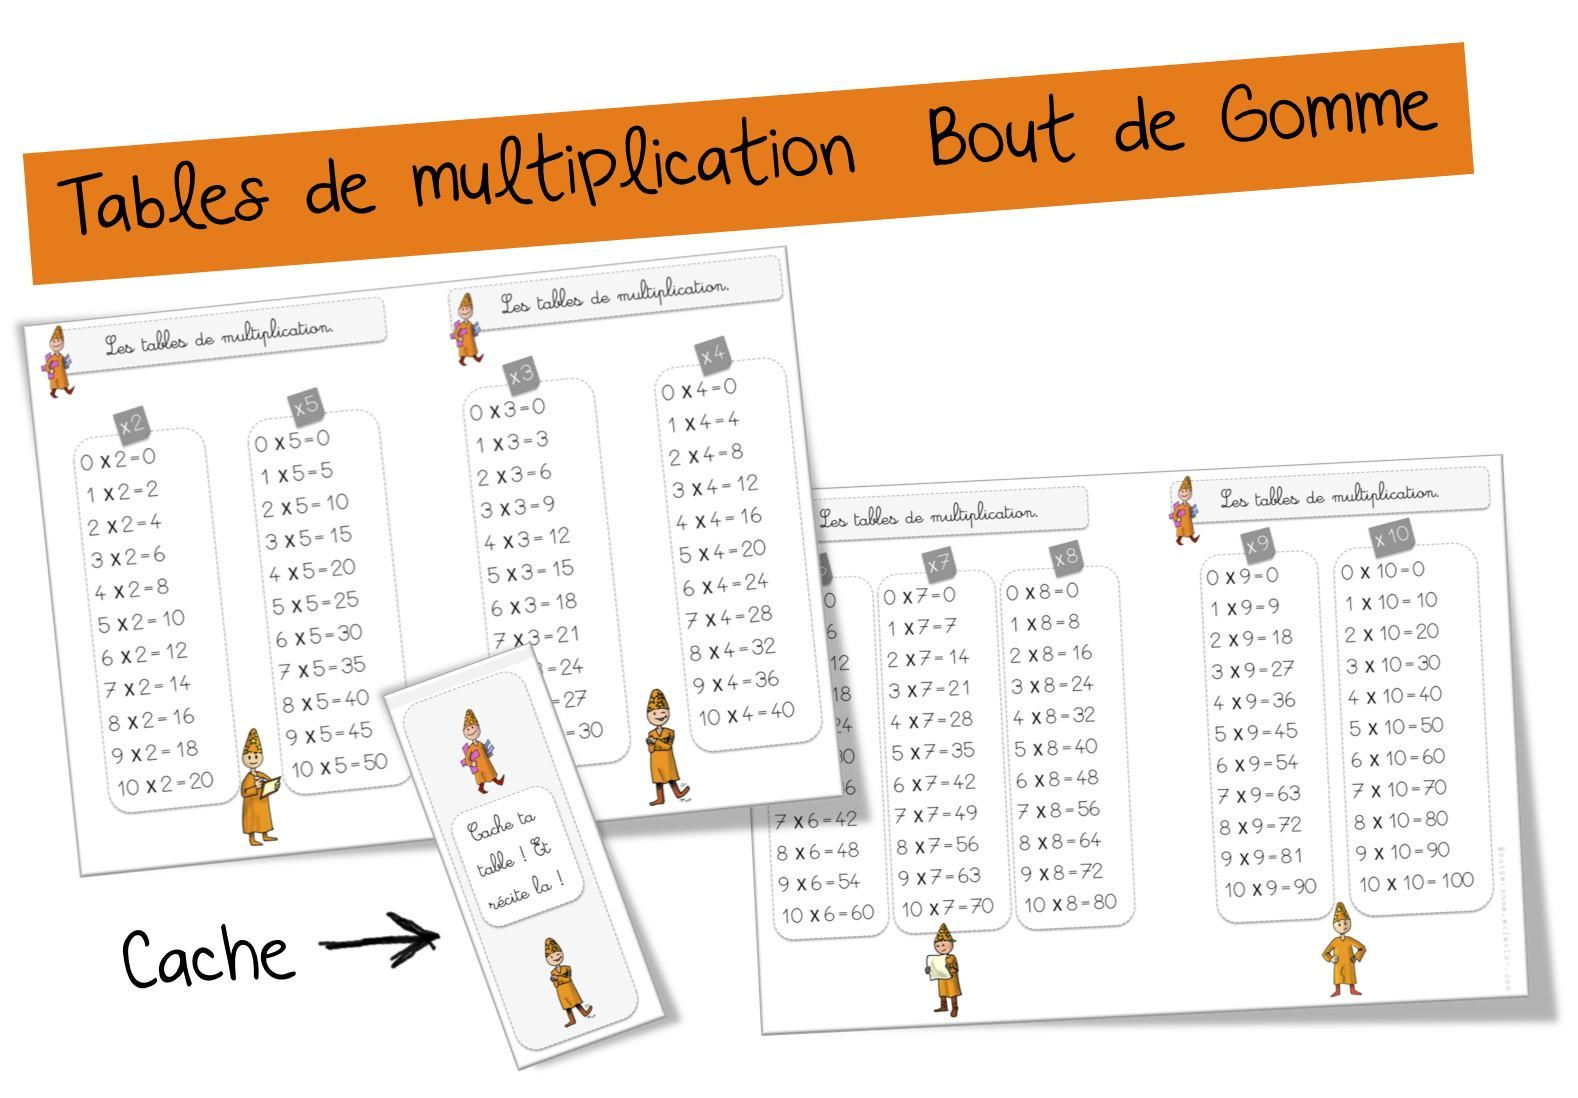 Tables de multiplication bout de gomme ce cm cycle 2 for Table de multiplication de 2 a 5